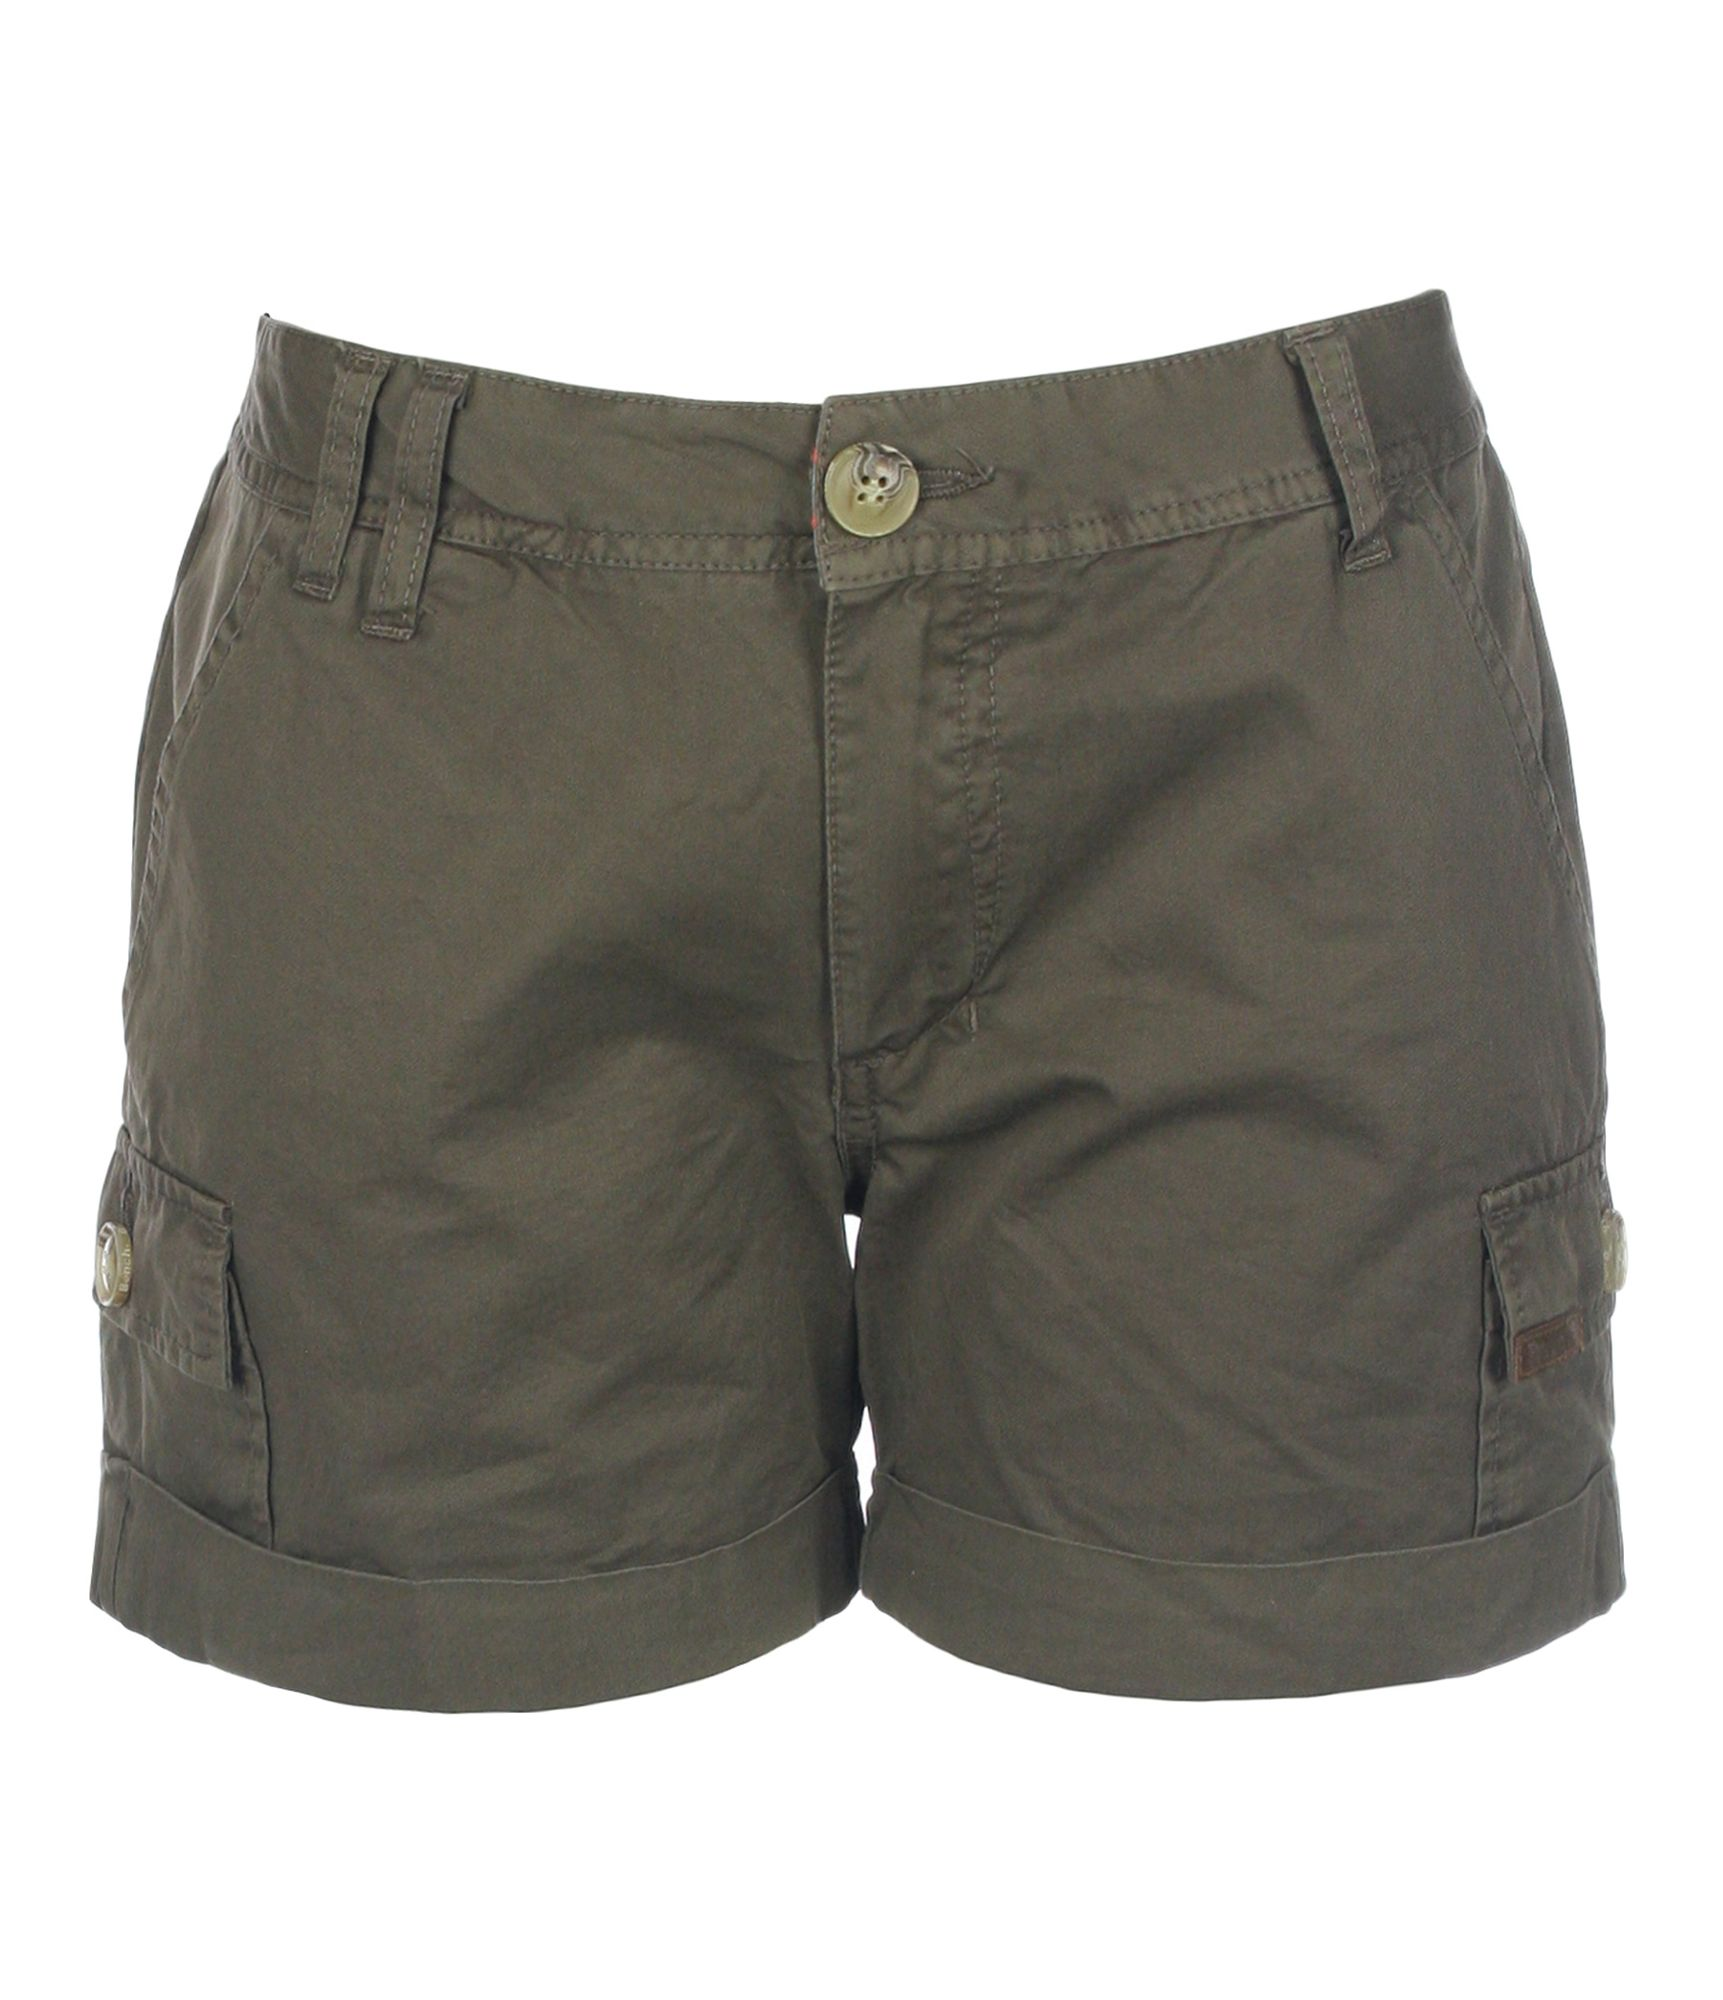 Bench Womens Shorts 28 Images Bench Womens Songbird Denim Shorts In Blue Lyst Bench Shorts